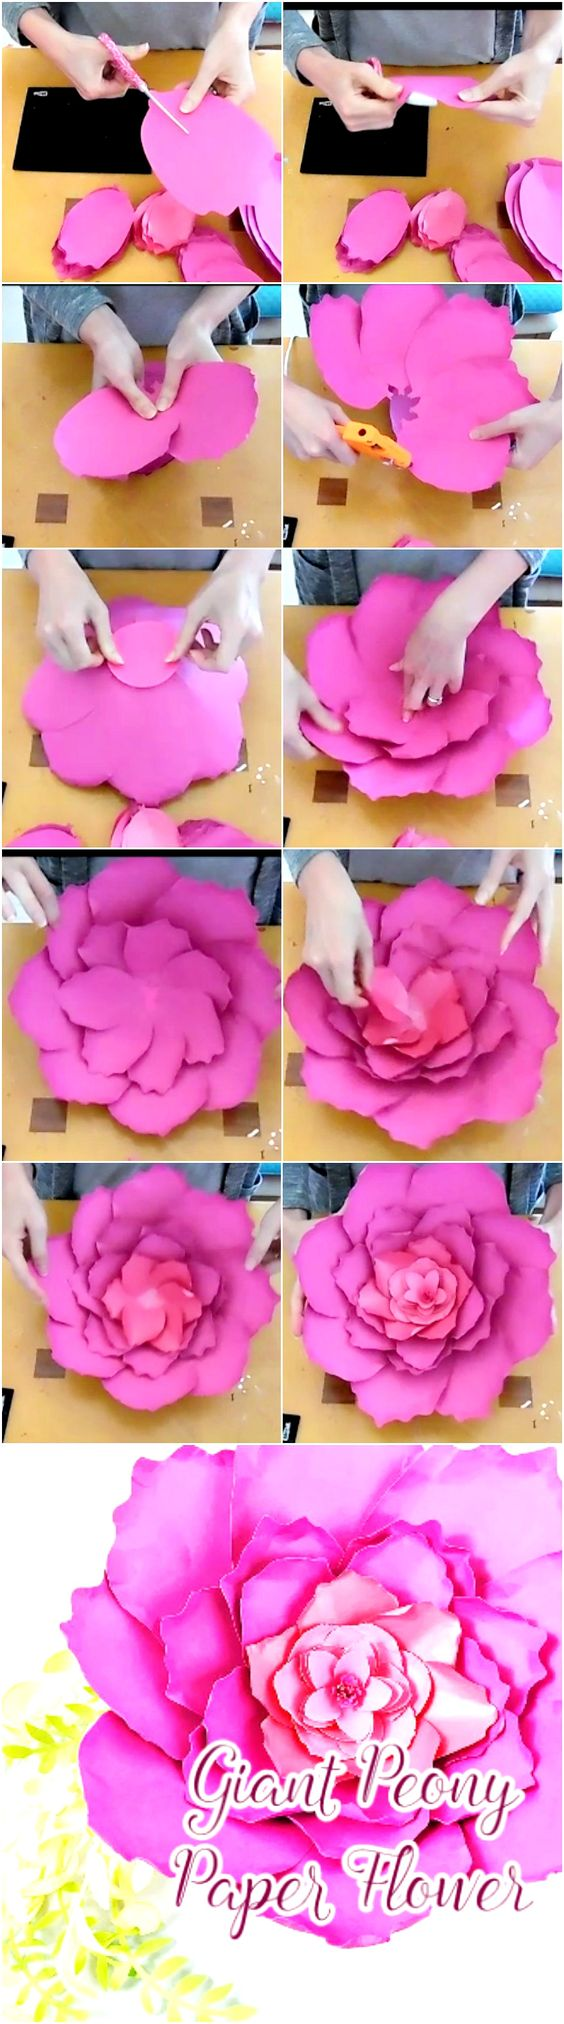 Giant peony, paper flower templates and tutorials. Paper flower patterns. DIY paper flowers. #ideas: